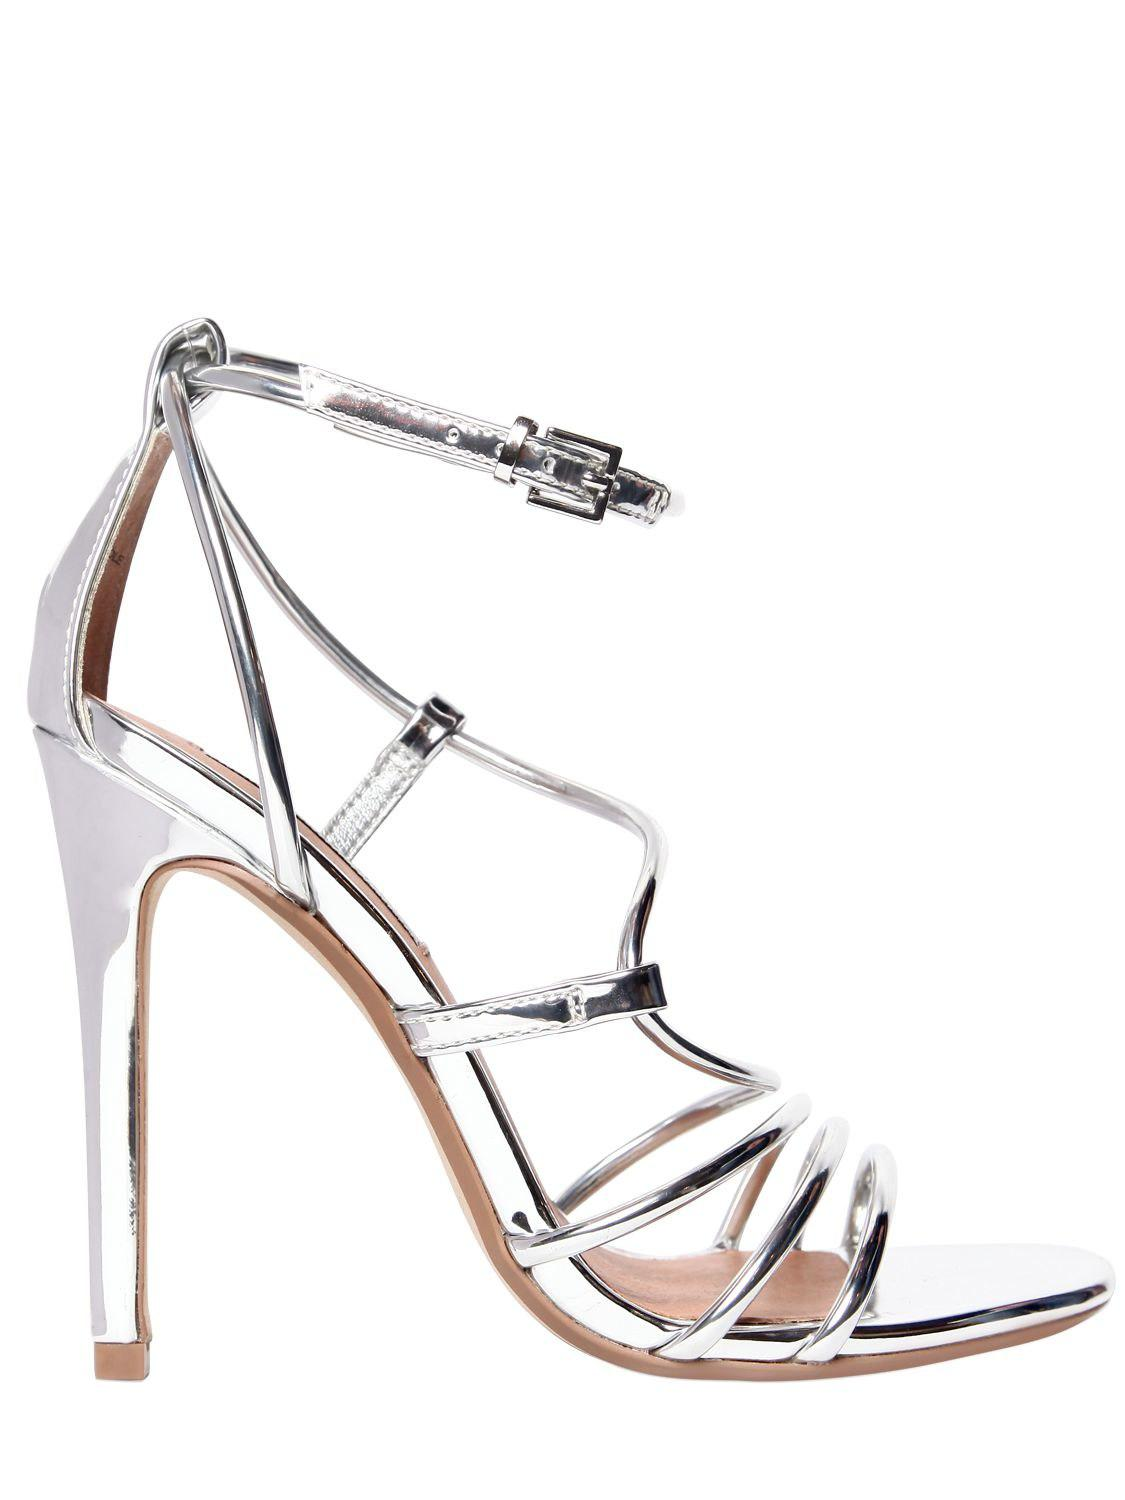 Steve Madden 100MM SMITH METALLIC FAUX LEATHER SANDAL gWZse